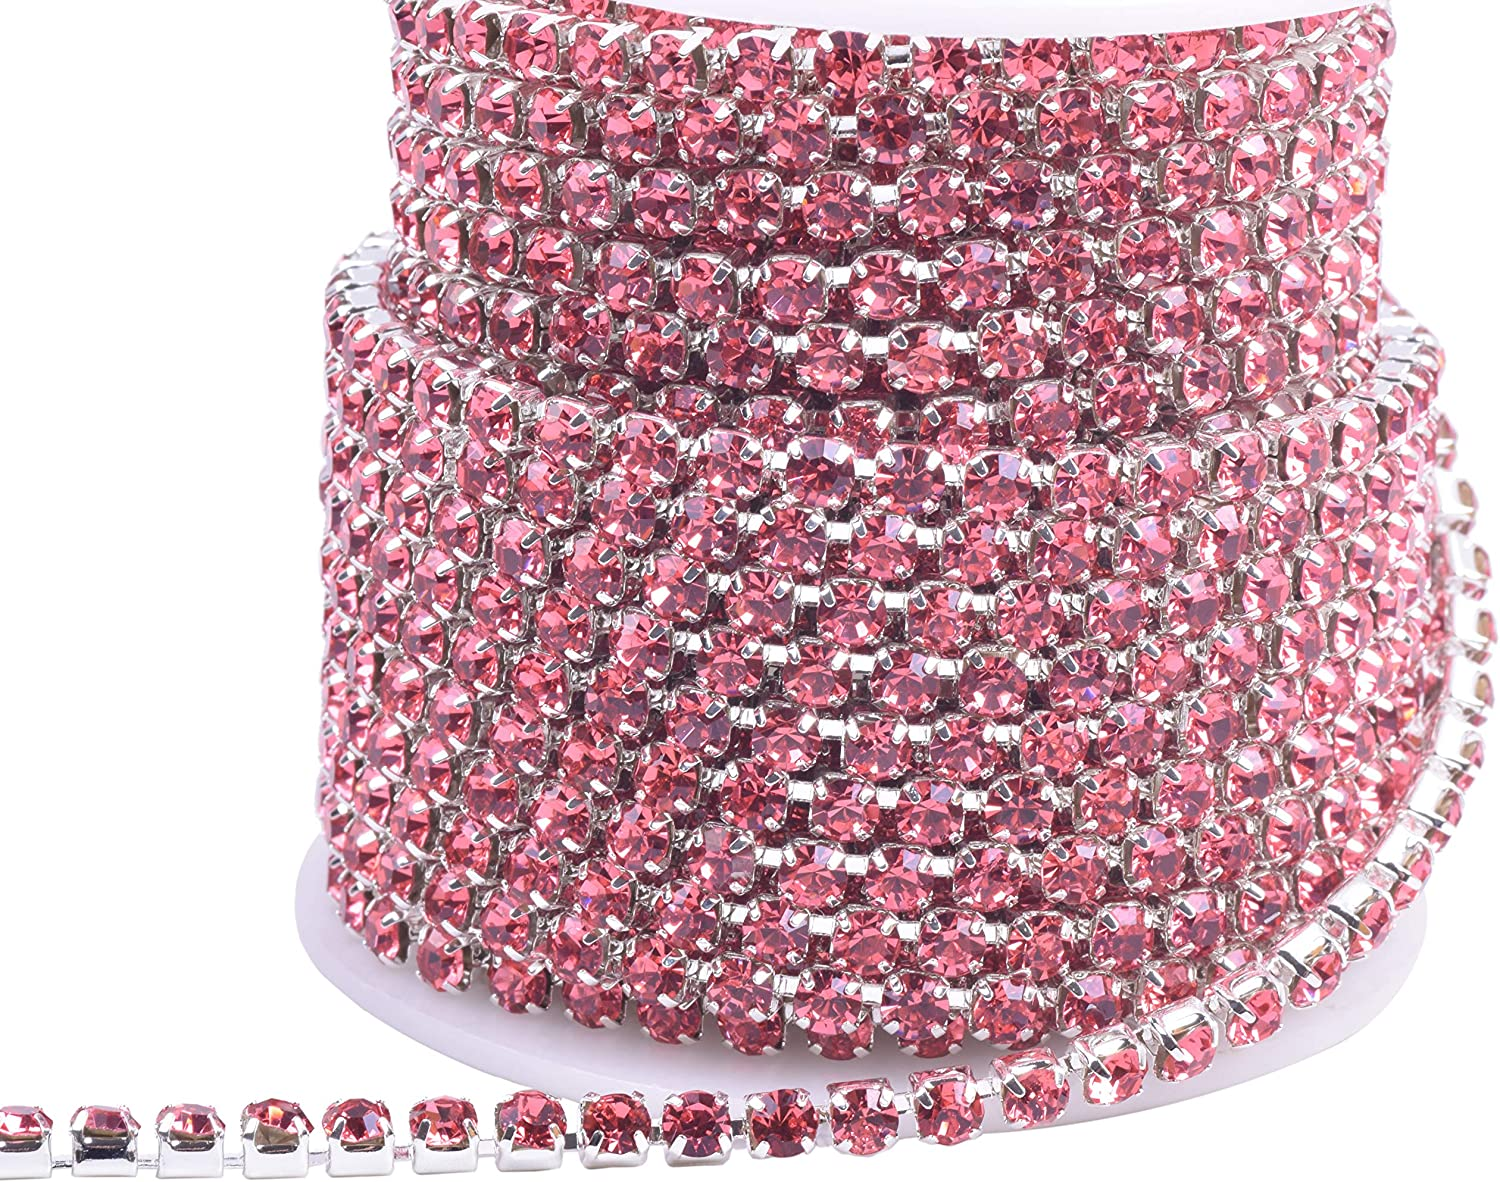 KAOYOO 10 Yards Crystal Rhinestone Close Chain Trim with Rainbow Colorful Beads SS12//3.0mm Silver Chain 5 Different Colors Mixed